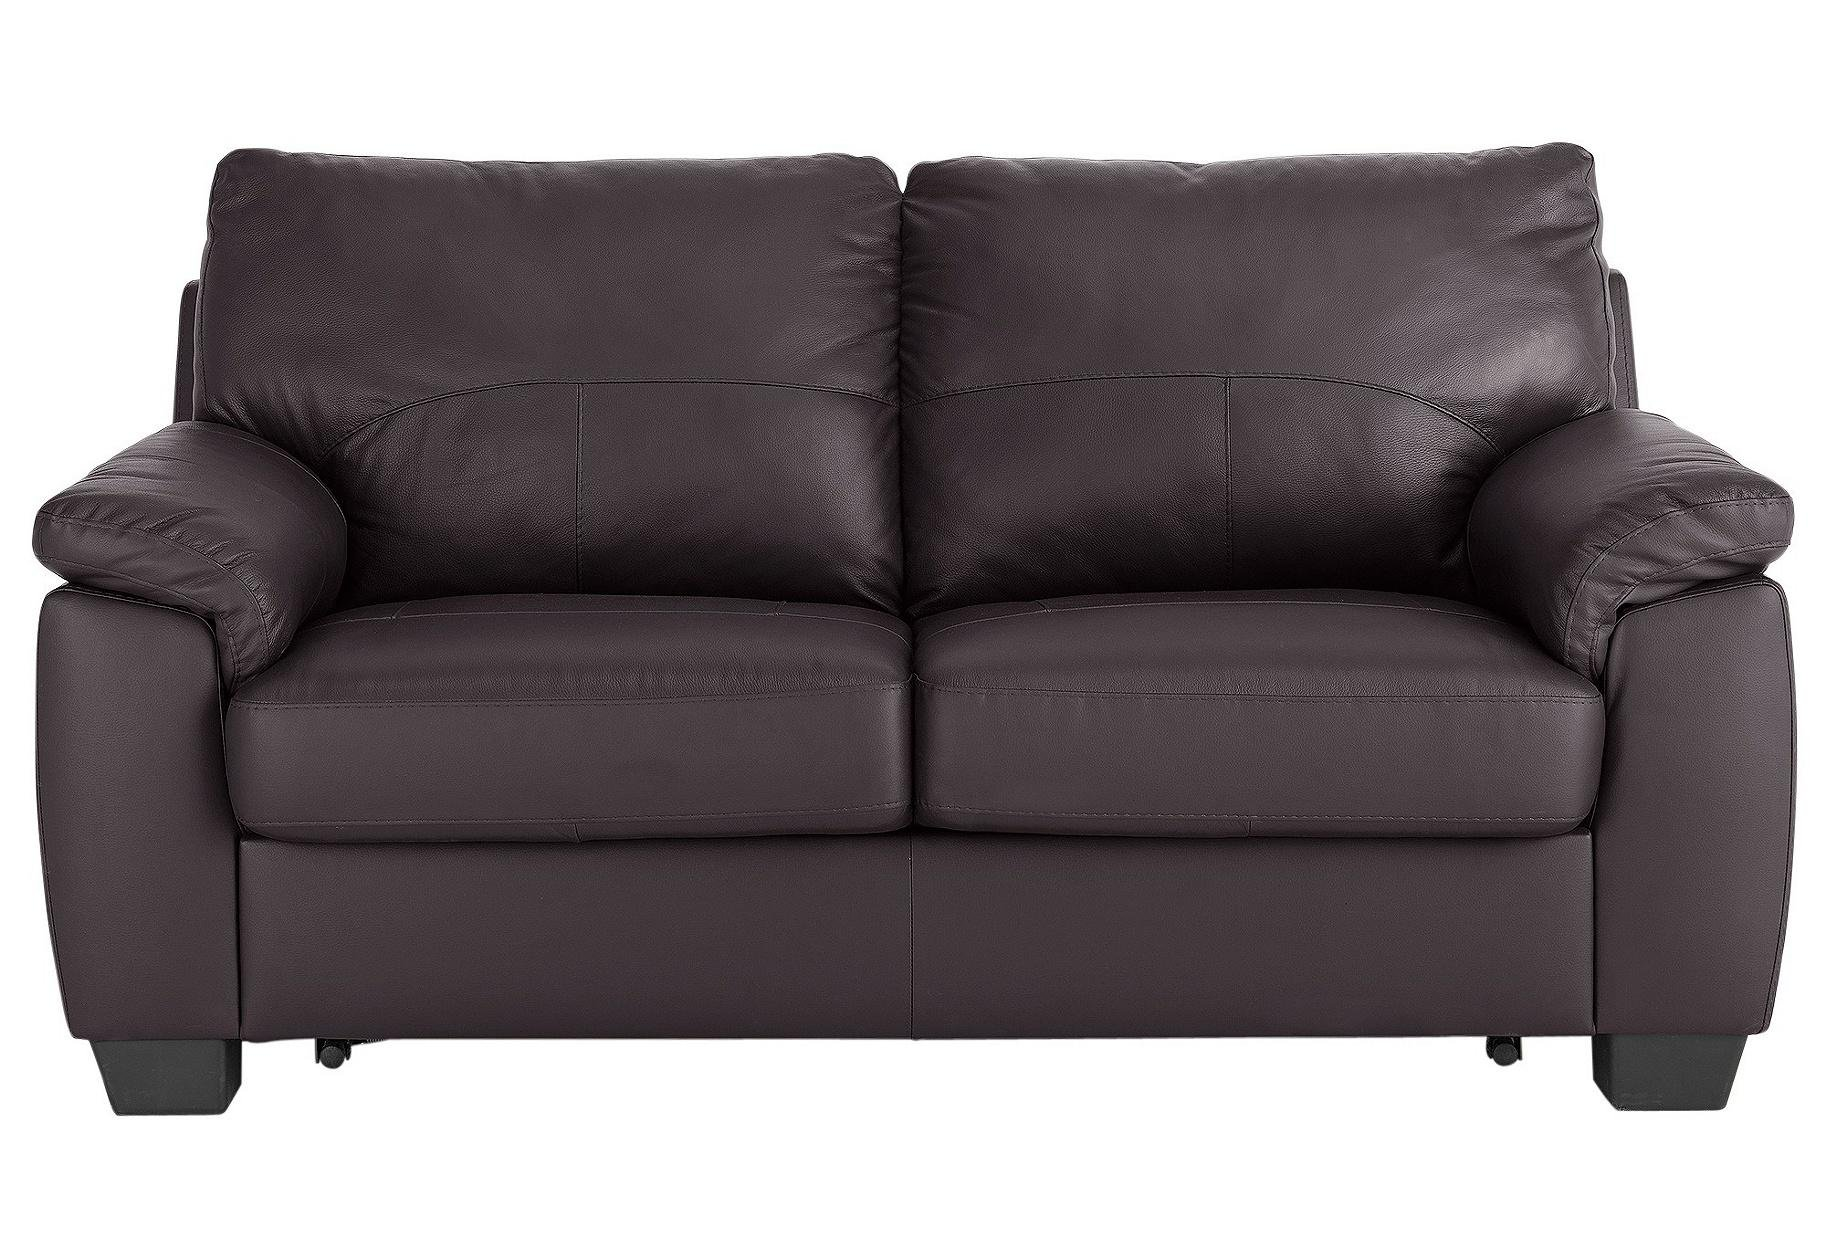 black leather sofa bed argos stanley showroom in bangalore buy home logan 2 seater faux chocolate